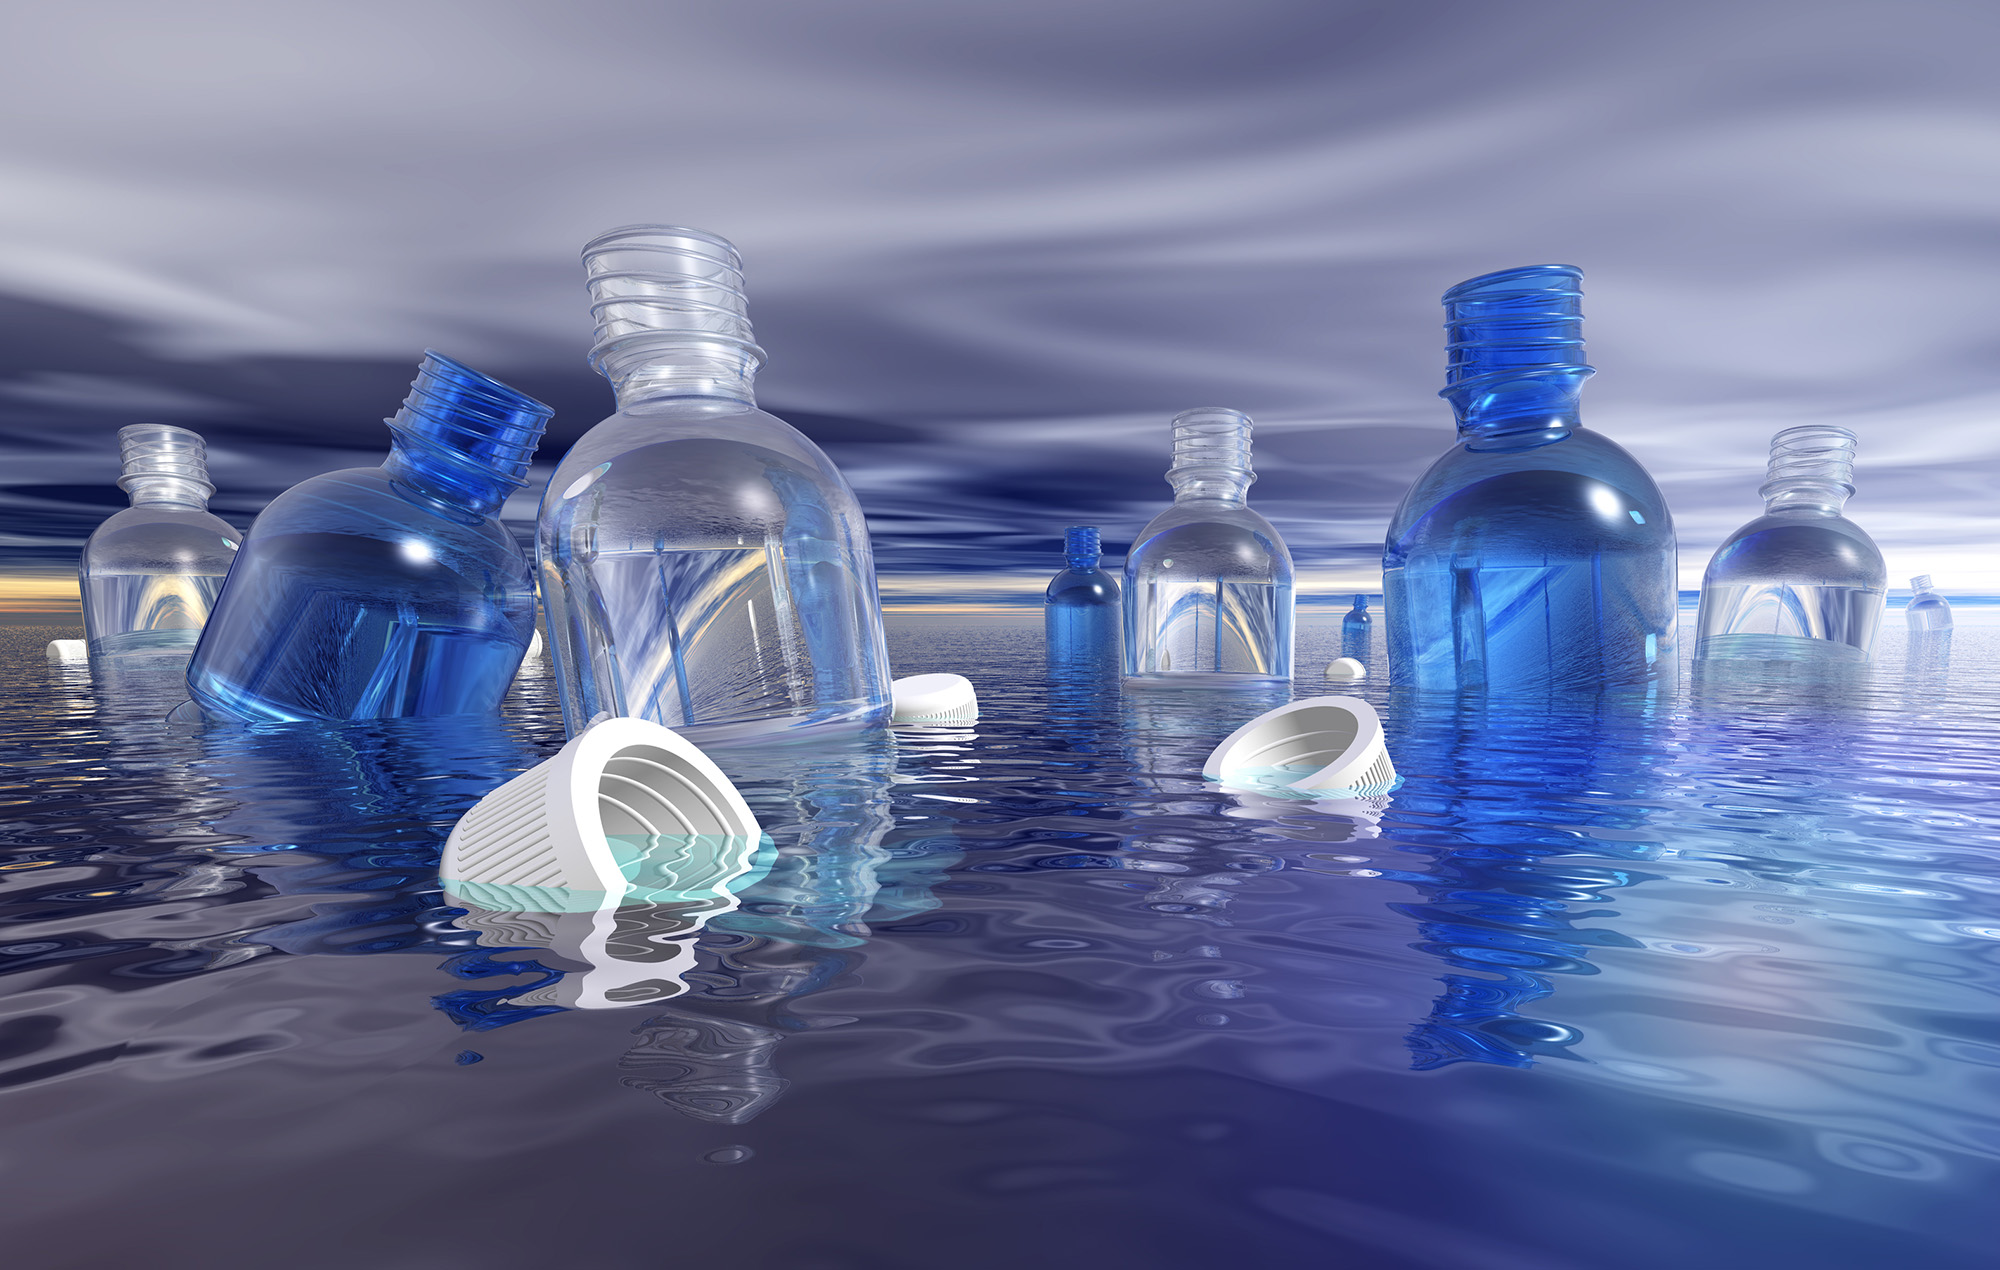 Featured image for Reimagine products to ease plastic pollution, says Sagentia